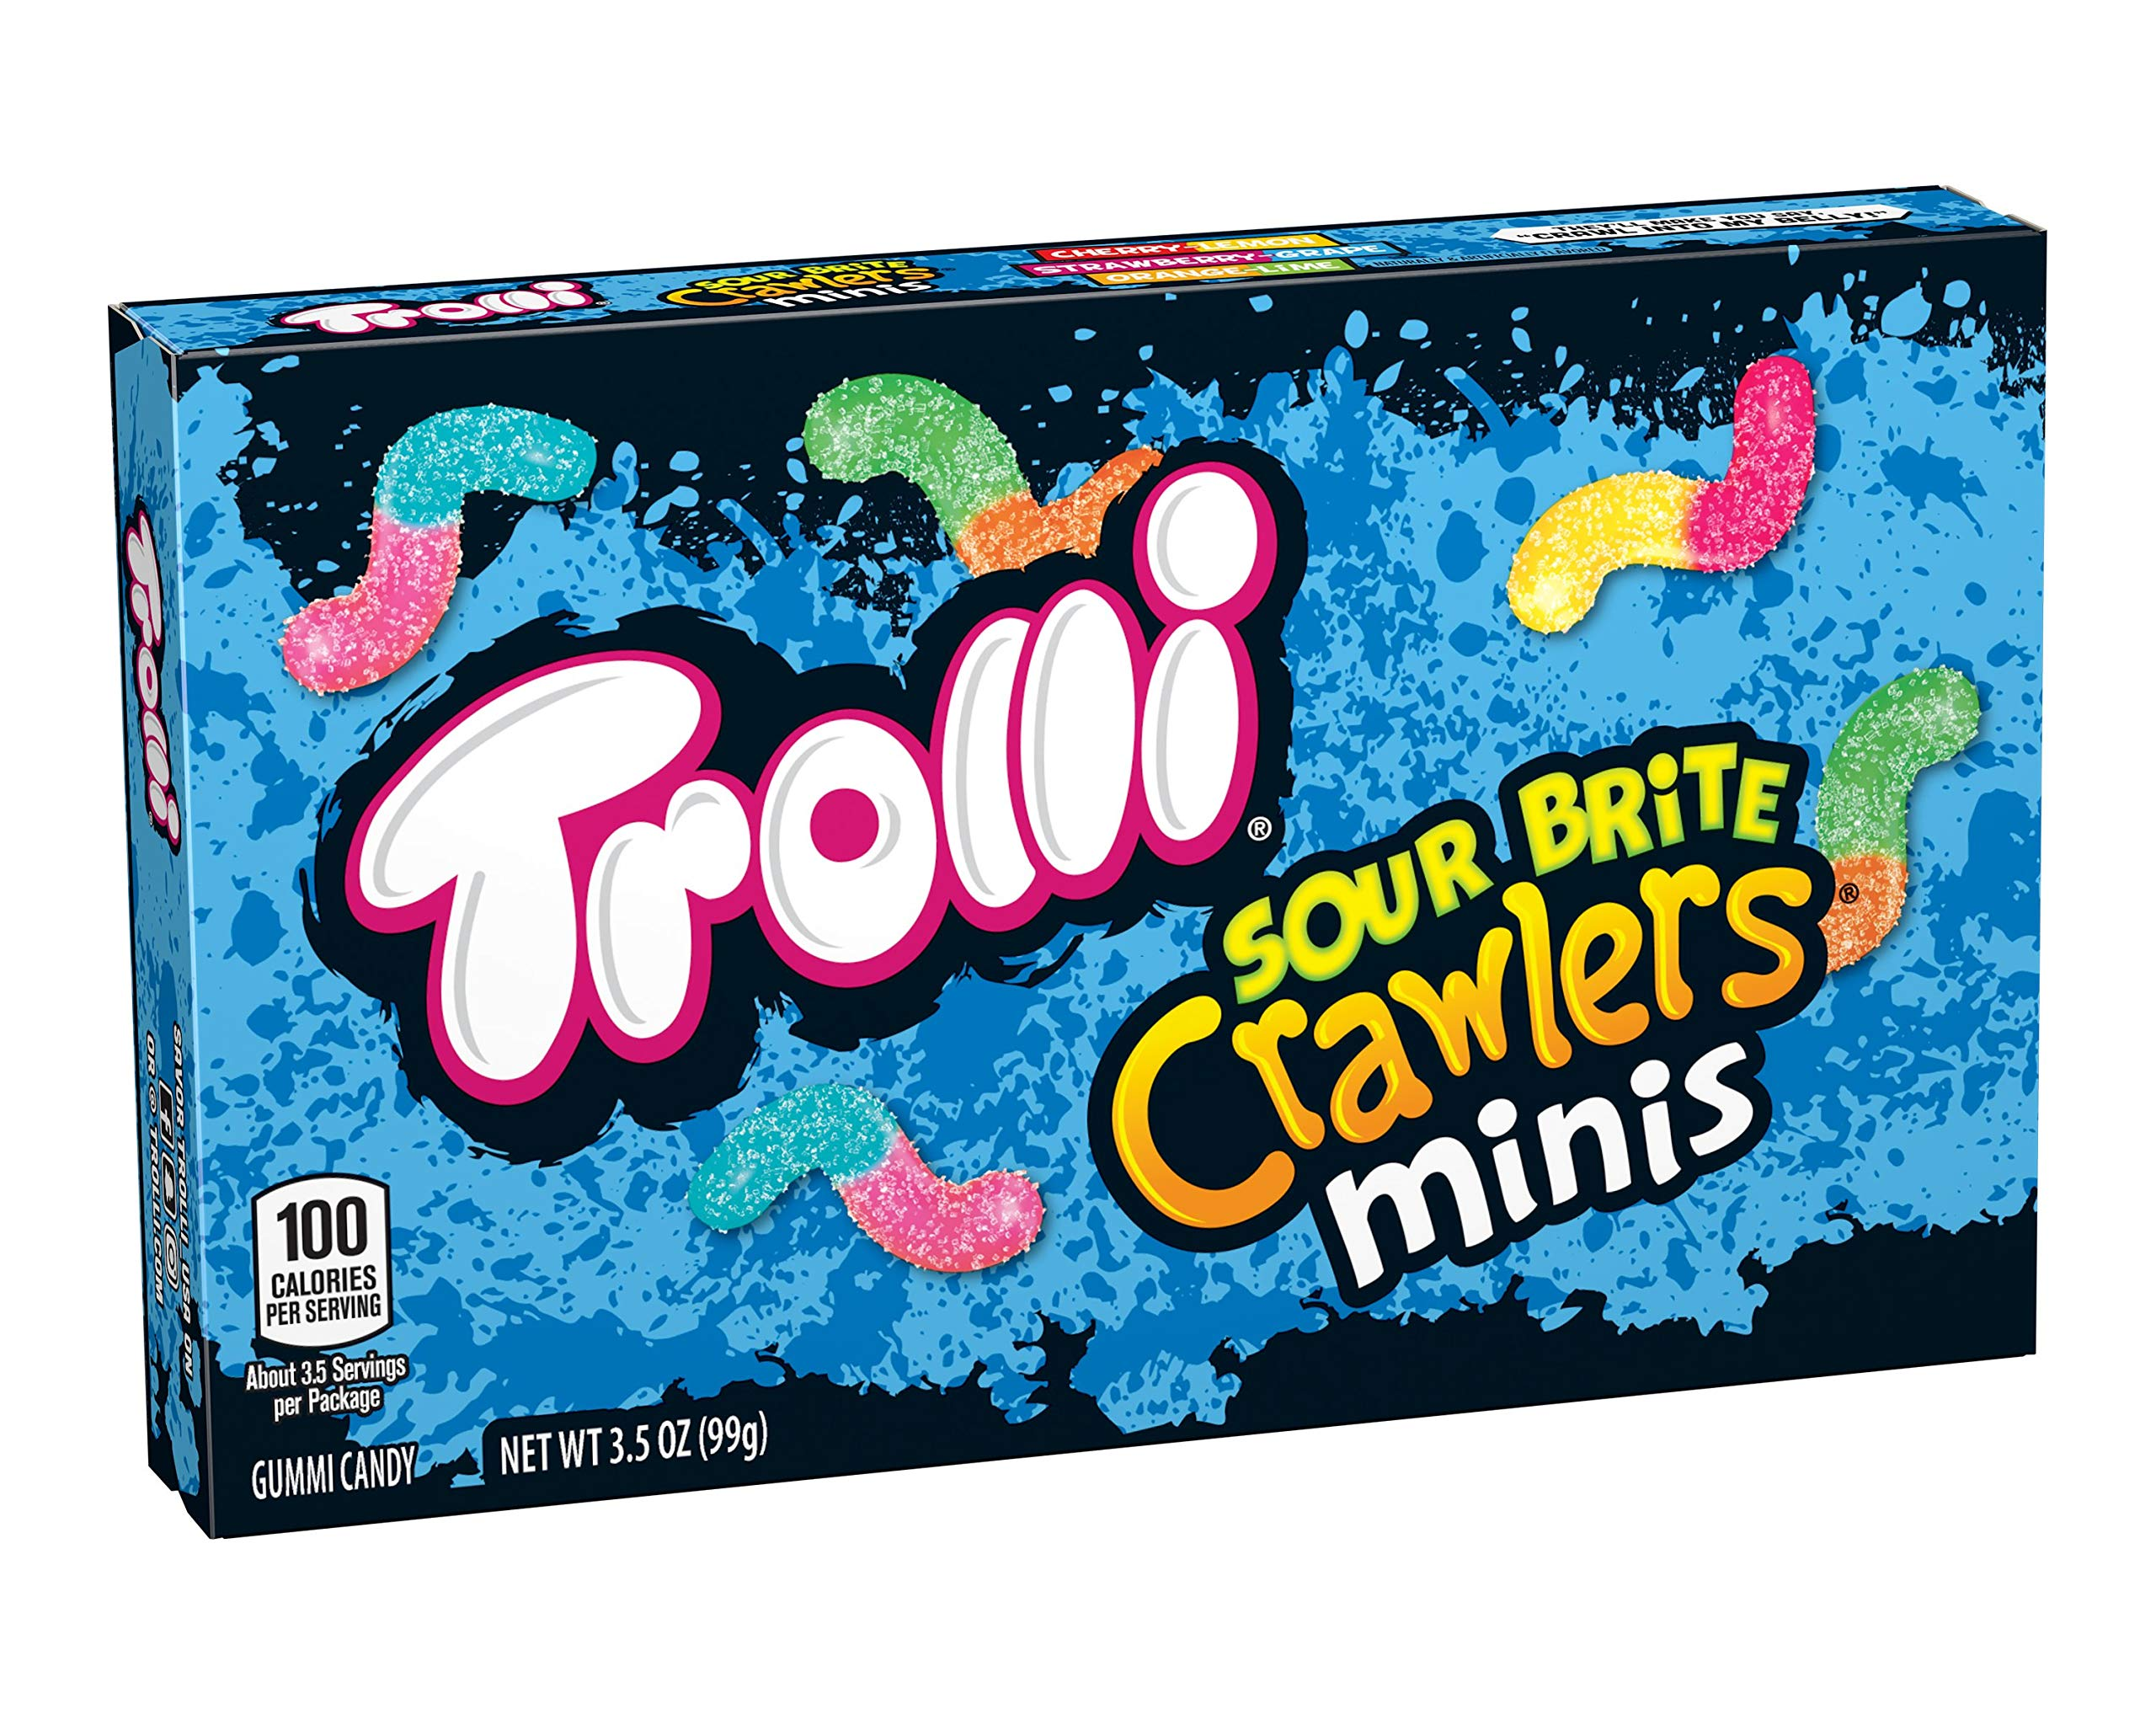 Trolli Sour Brite Crawlers Gummy Worms, 3.5 Ounce Theatre Box (Pack of 12) Sour Gummy Worms by Trolli (Image #1)